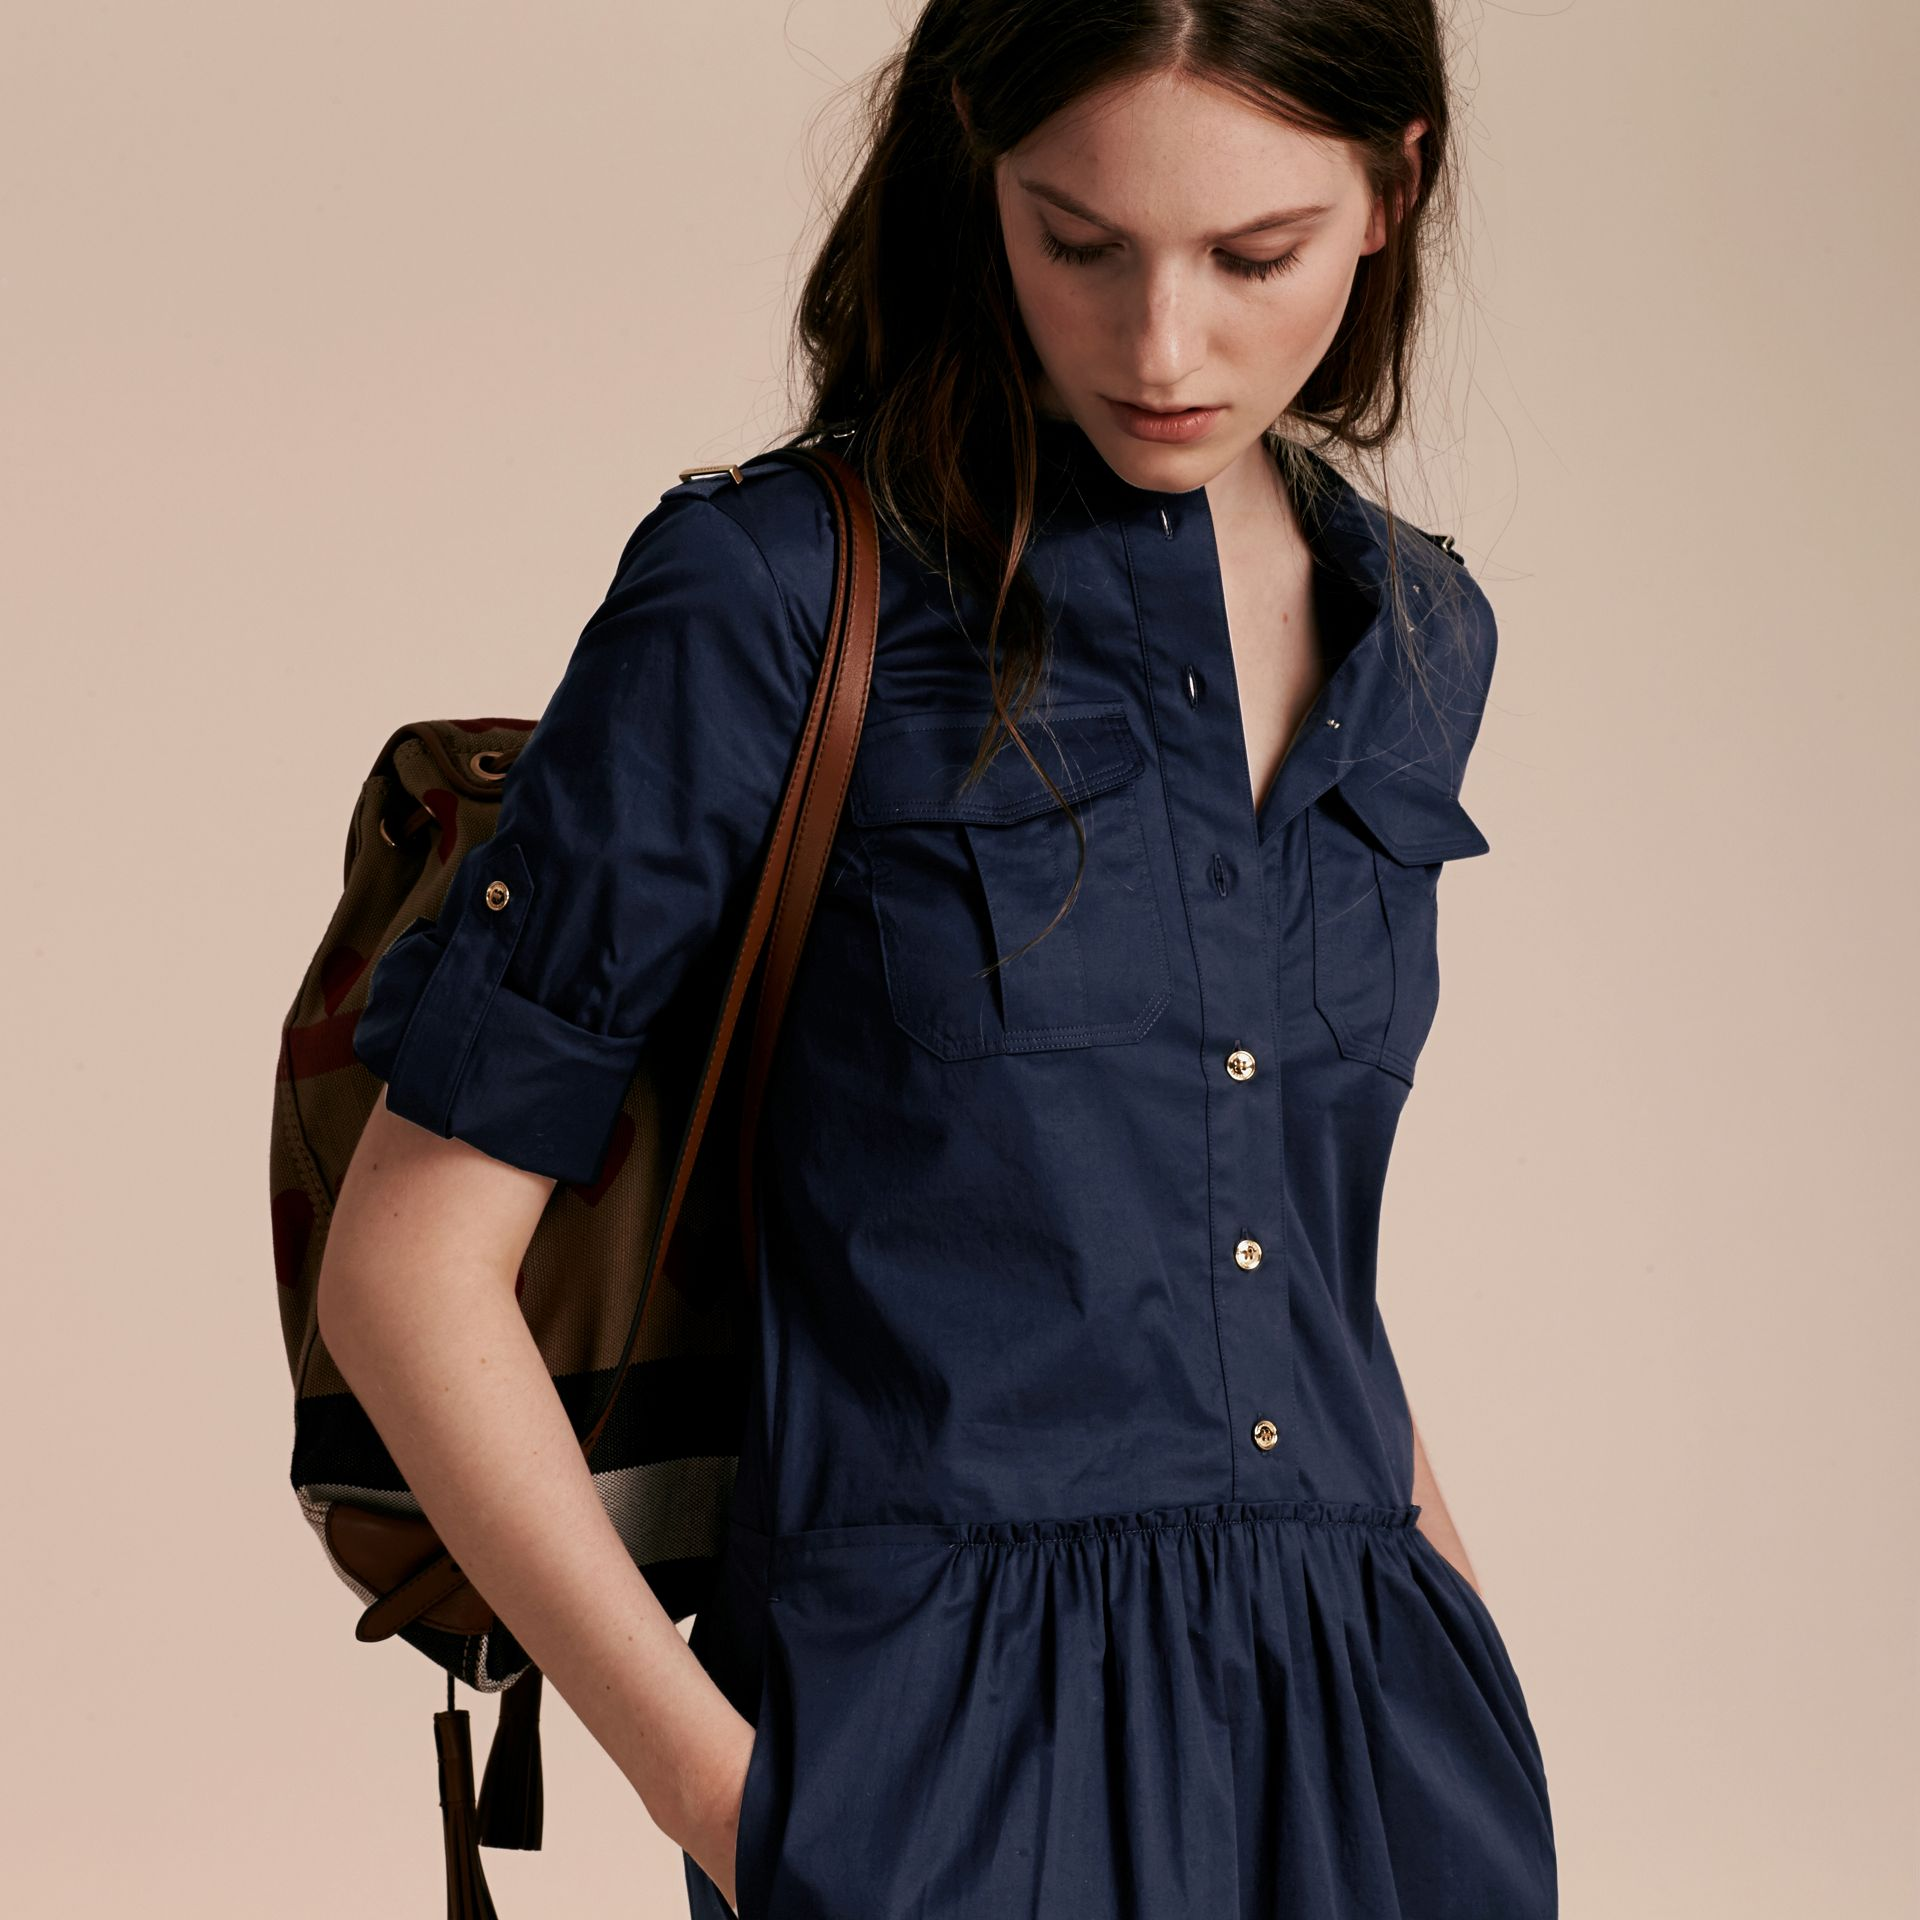 Dark pewter blue Military-inspired Cotton Blend Shirt Dress Dark Pewter Blue - gallery image 7